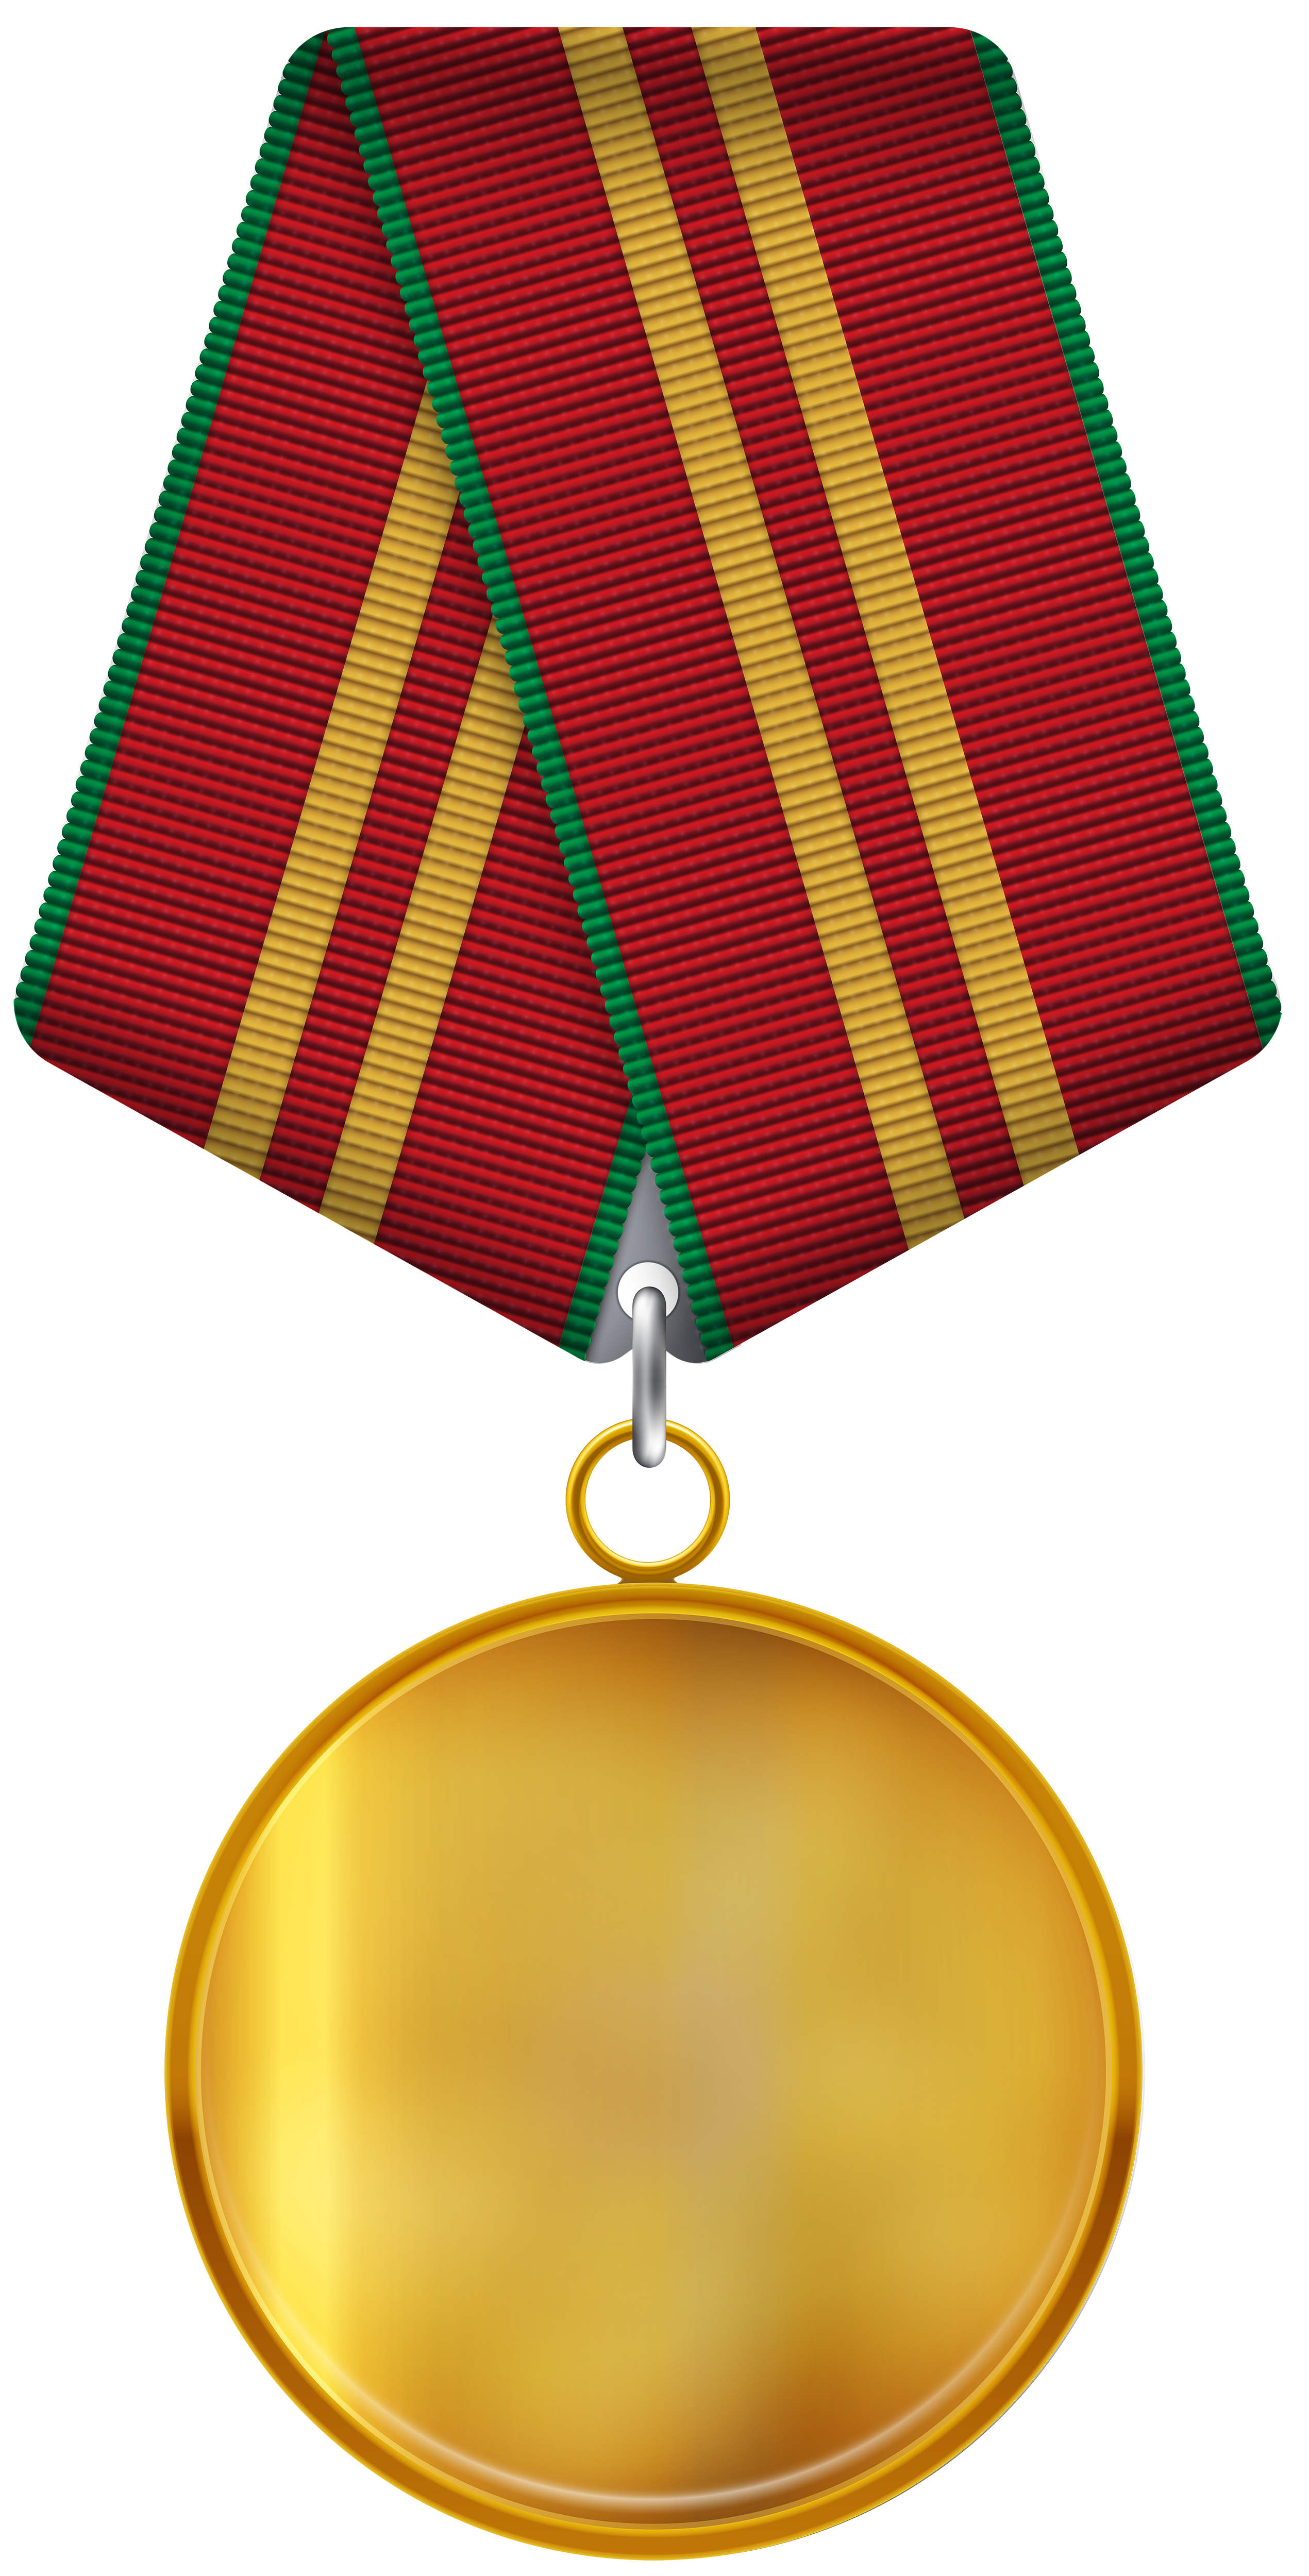 jpg freeuse download Free png clip art. Medal clipart